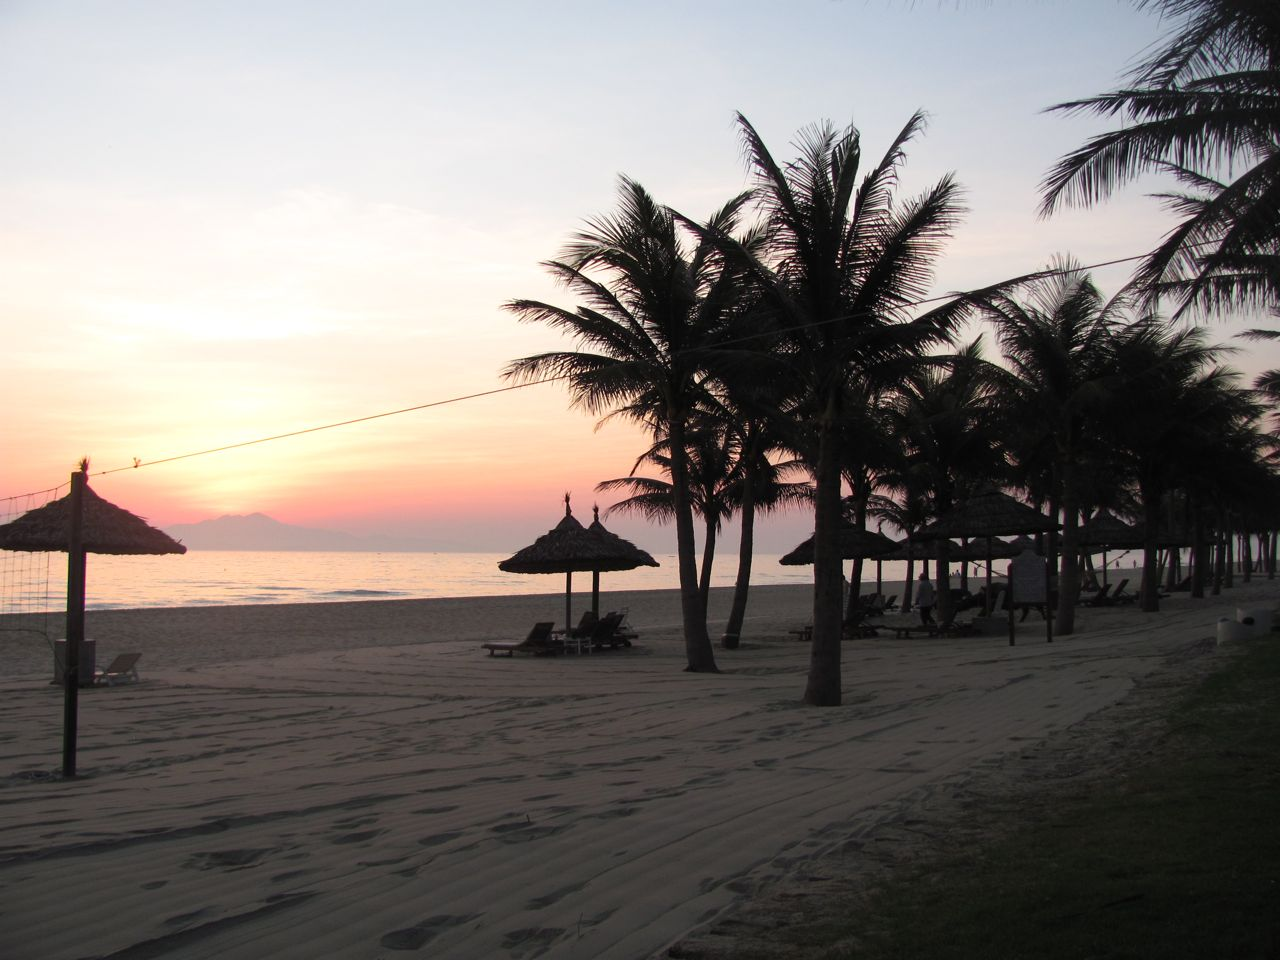 Sunrise at Cua Dai Beach